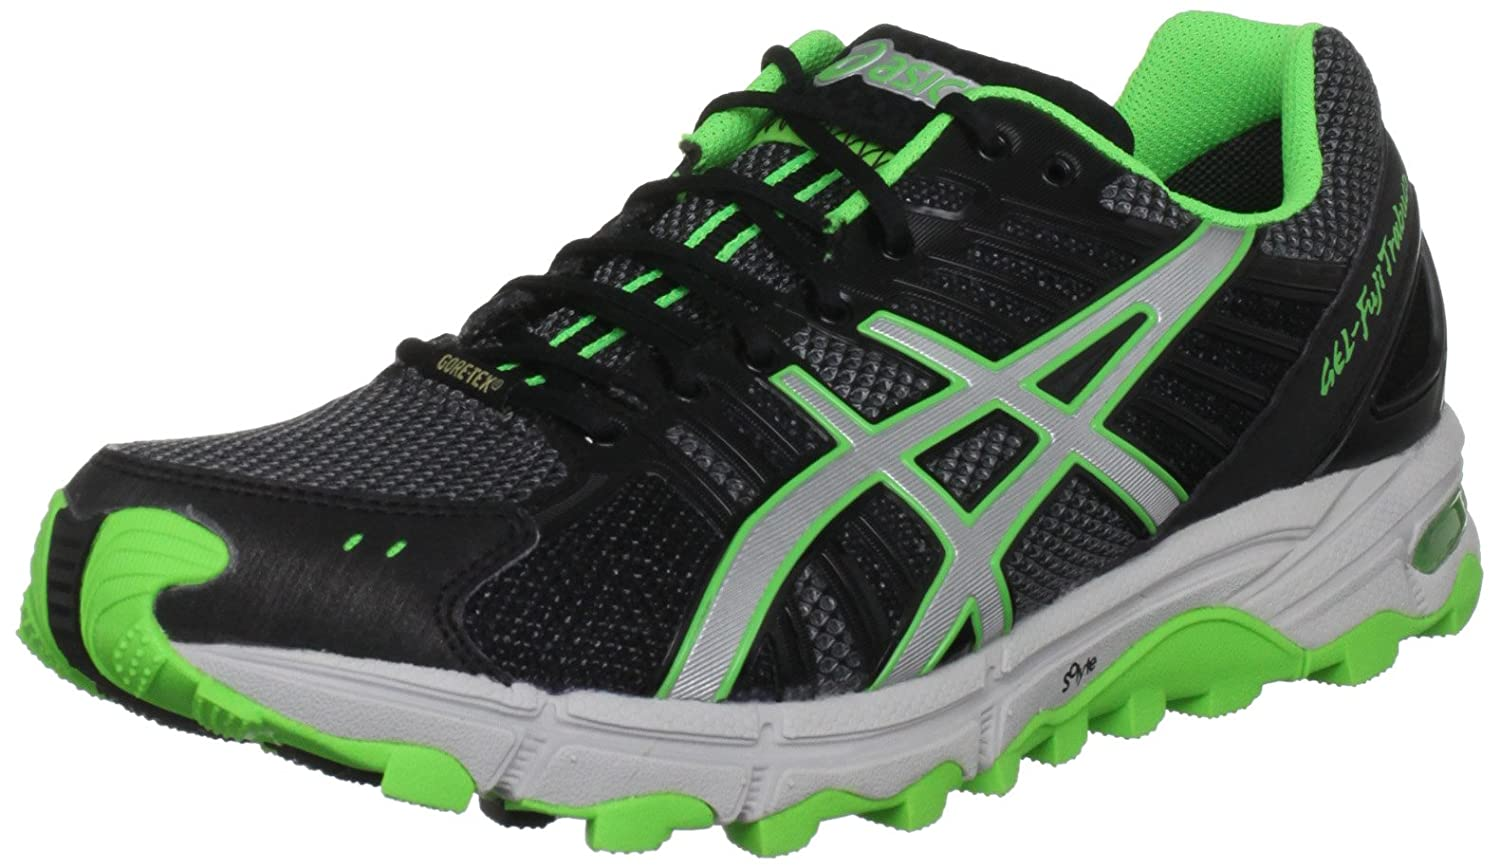 Amazon.com | ASICS Mens Gel Fuji Trabuco Neutral G-Tx Titanium/Silver/Neon Green Trainer T2C0N 9793 7.5 UK | Trail Running